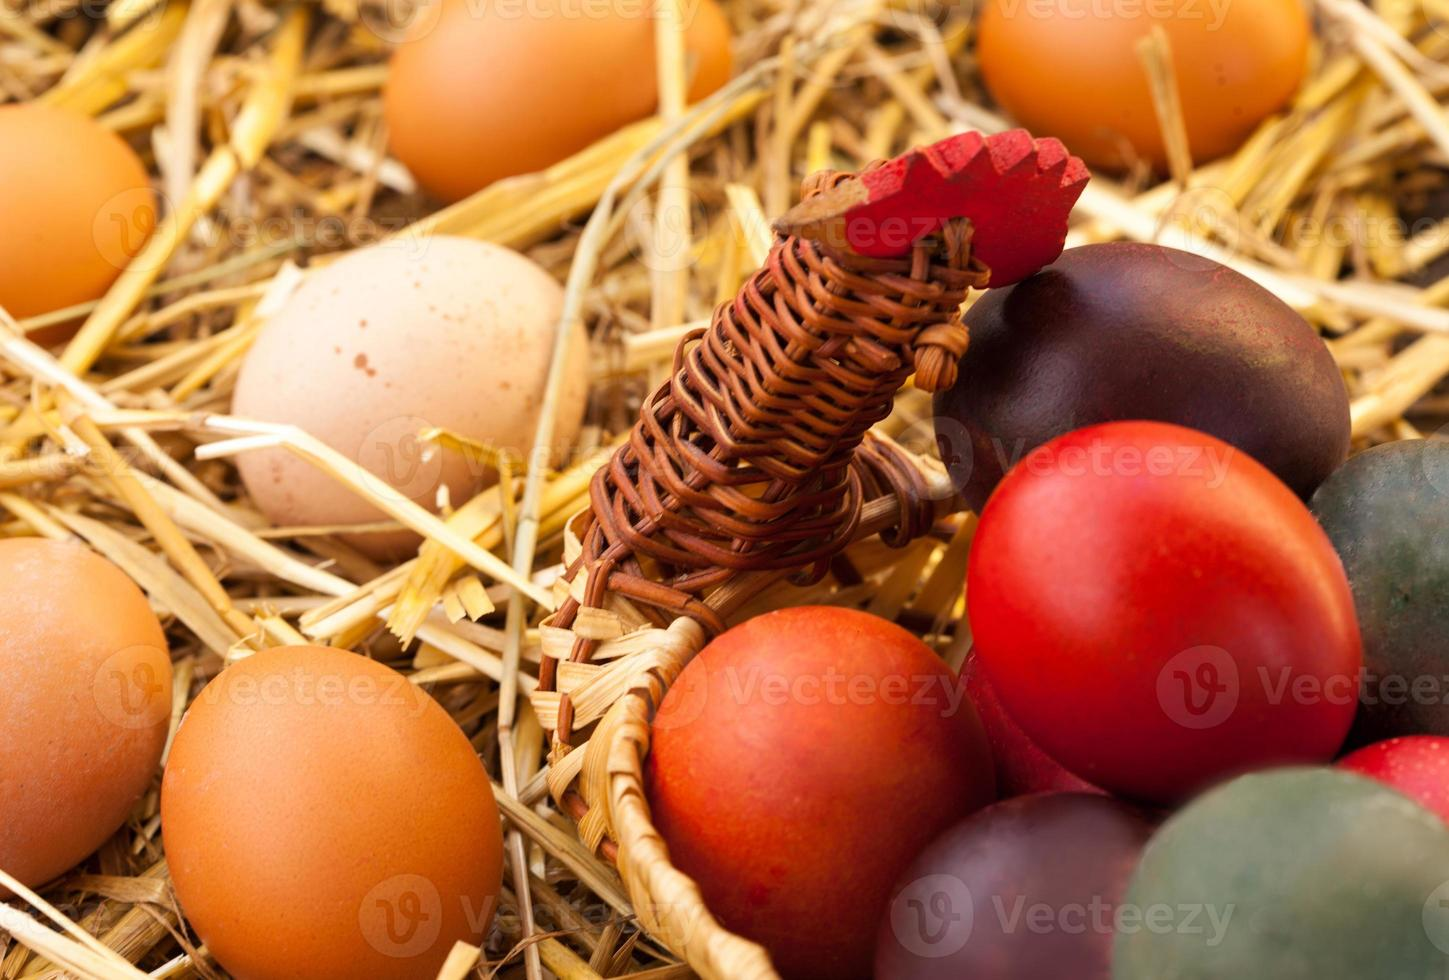 eggs in hay and woven basket photo